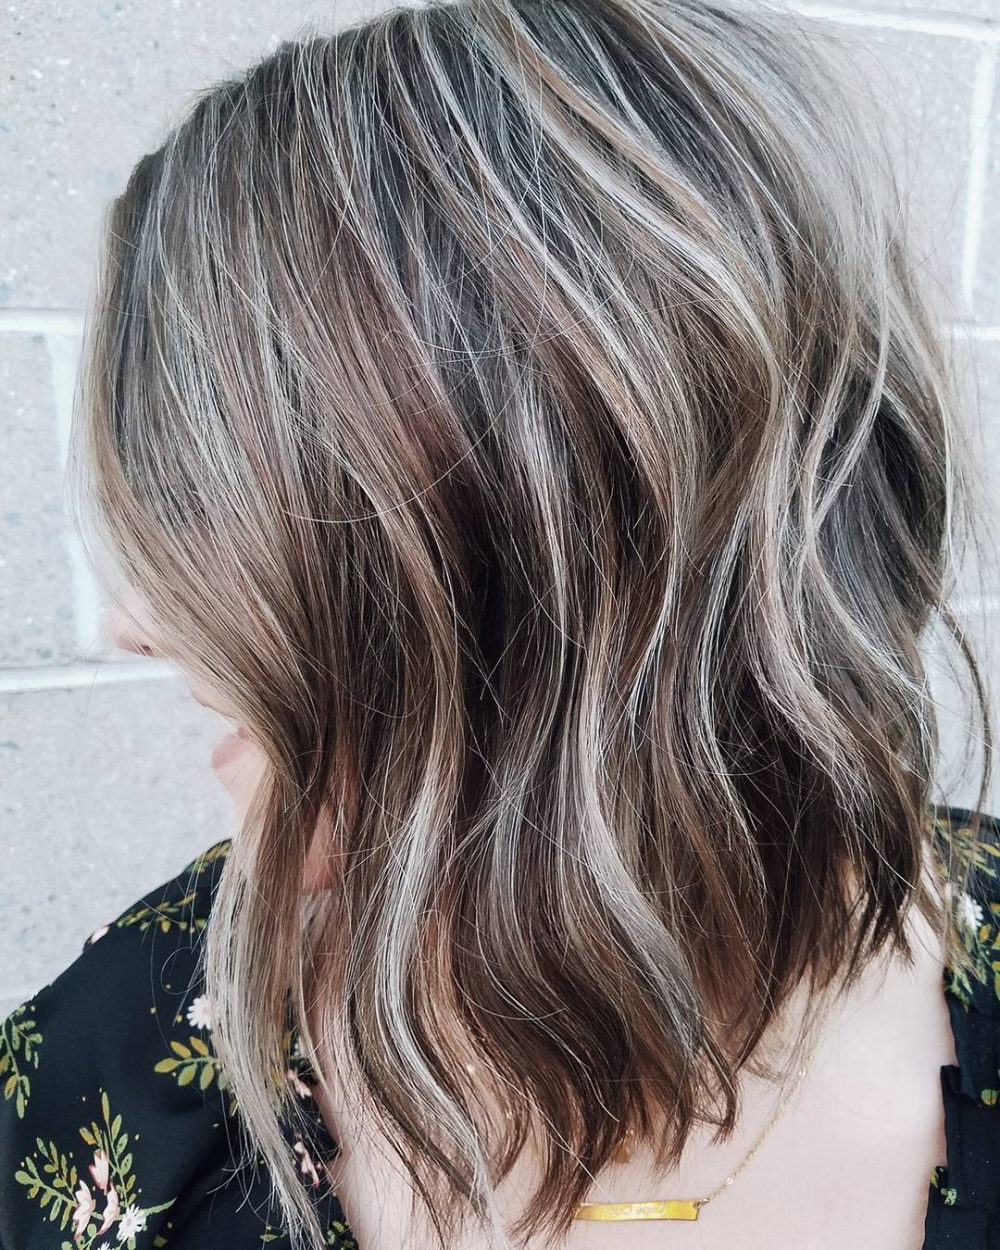 43 Perfect Short Hairstyles For Fine Hair In 2018 Pertaining To White Blonde Bob Haircuts For Fine Hair (View 12 of 20)